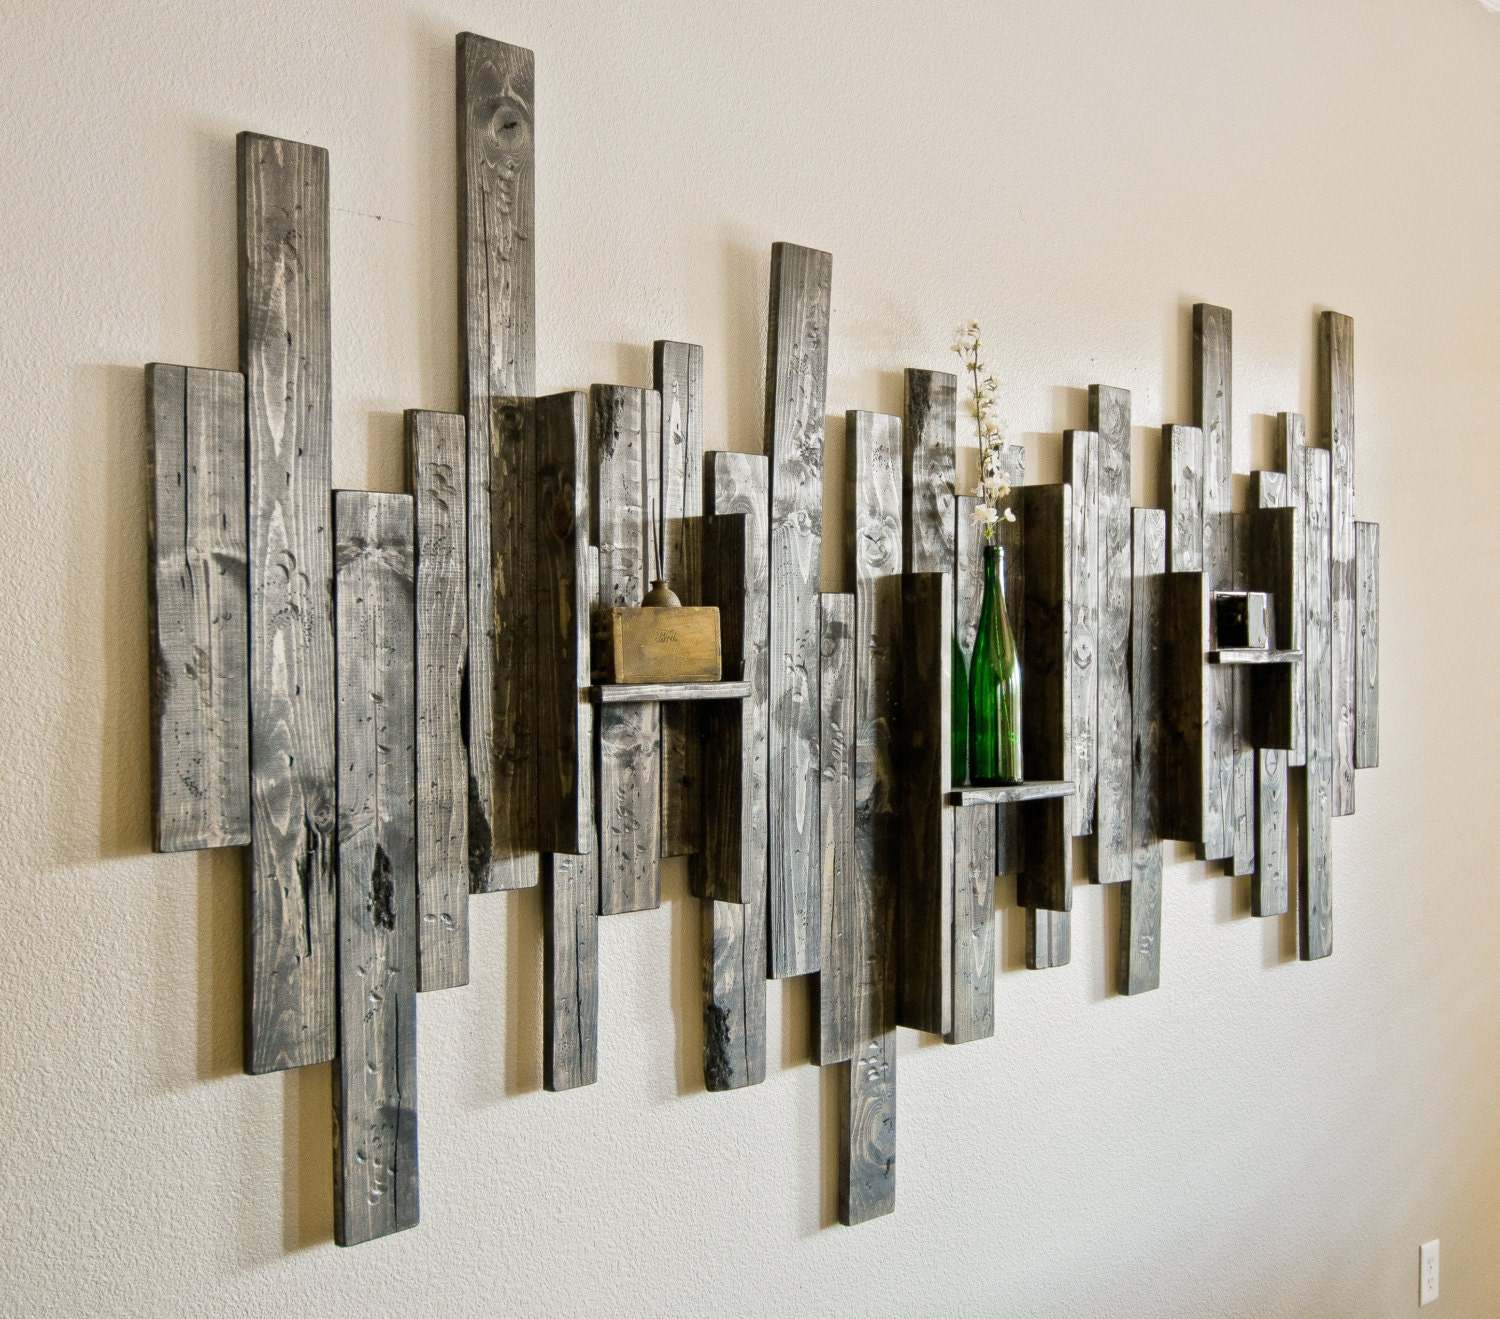 Unique wall decor shelves : Rustic display shelf decorative wall art